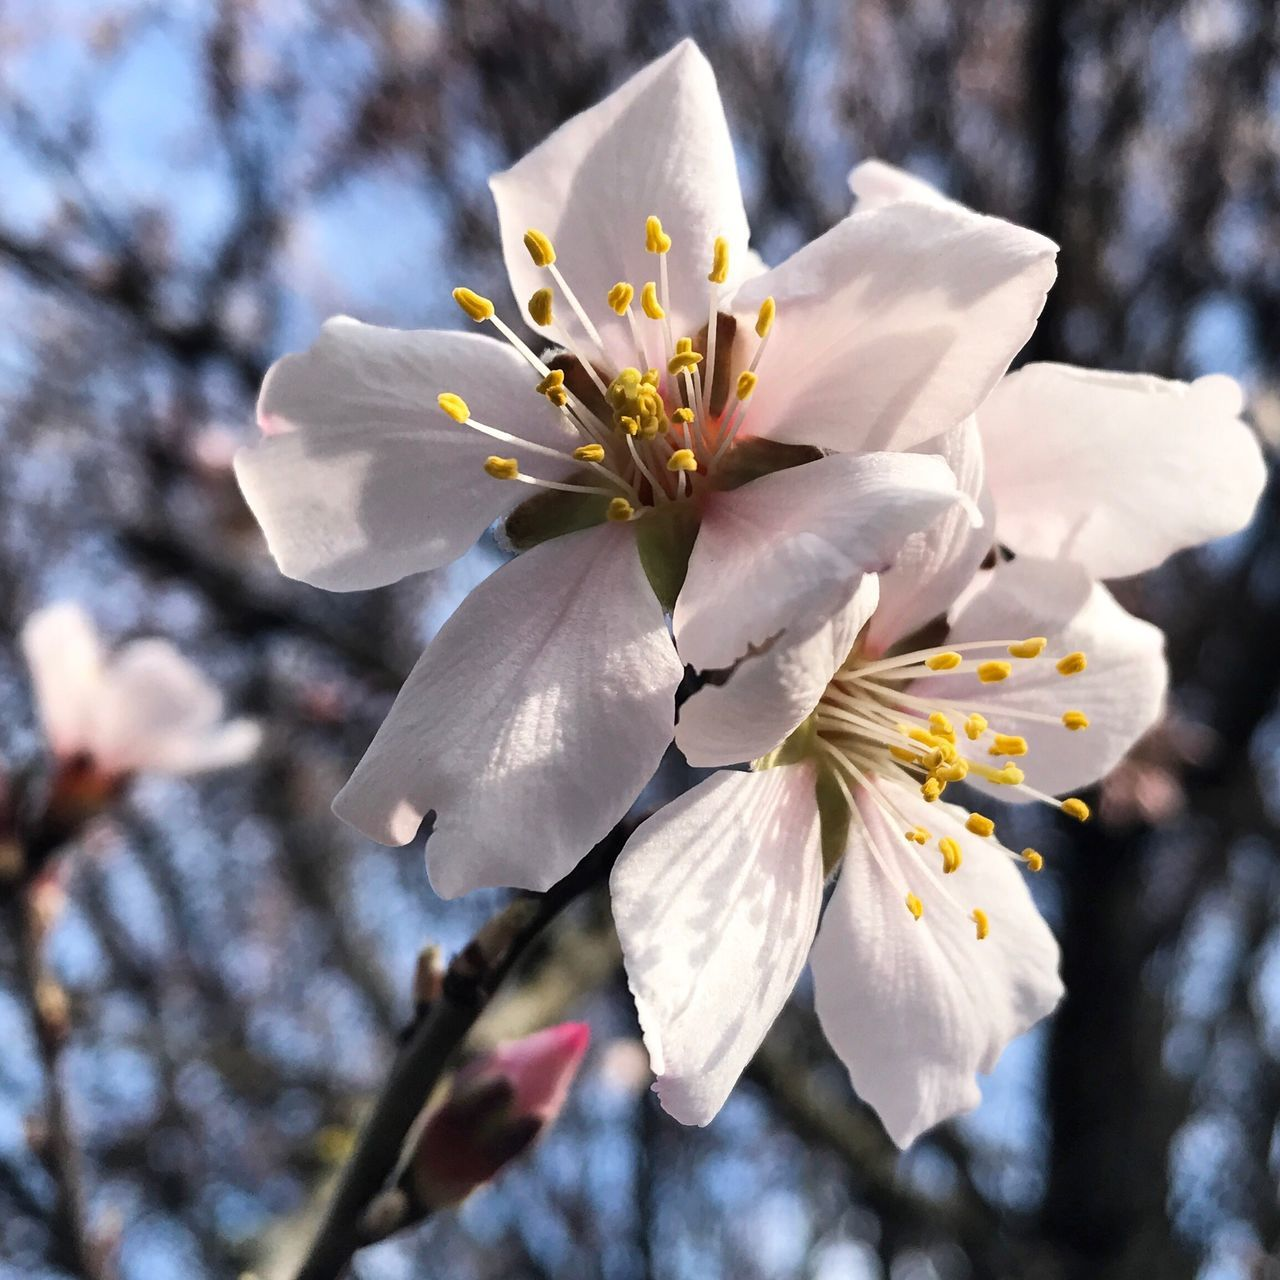 Millennial Pink Flower Close-up Nature Beauty In Nature Growth Petal Fragility Spring Is Coming  Focus On Foreground Flower Collection Spring Spring Flowers Field Freshness Flower Head Springtime Blossom Sunlight No People Day Outdoors Tree Sky Plum Blossom